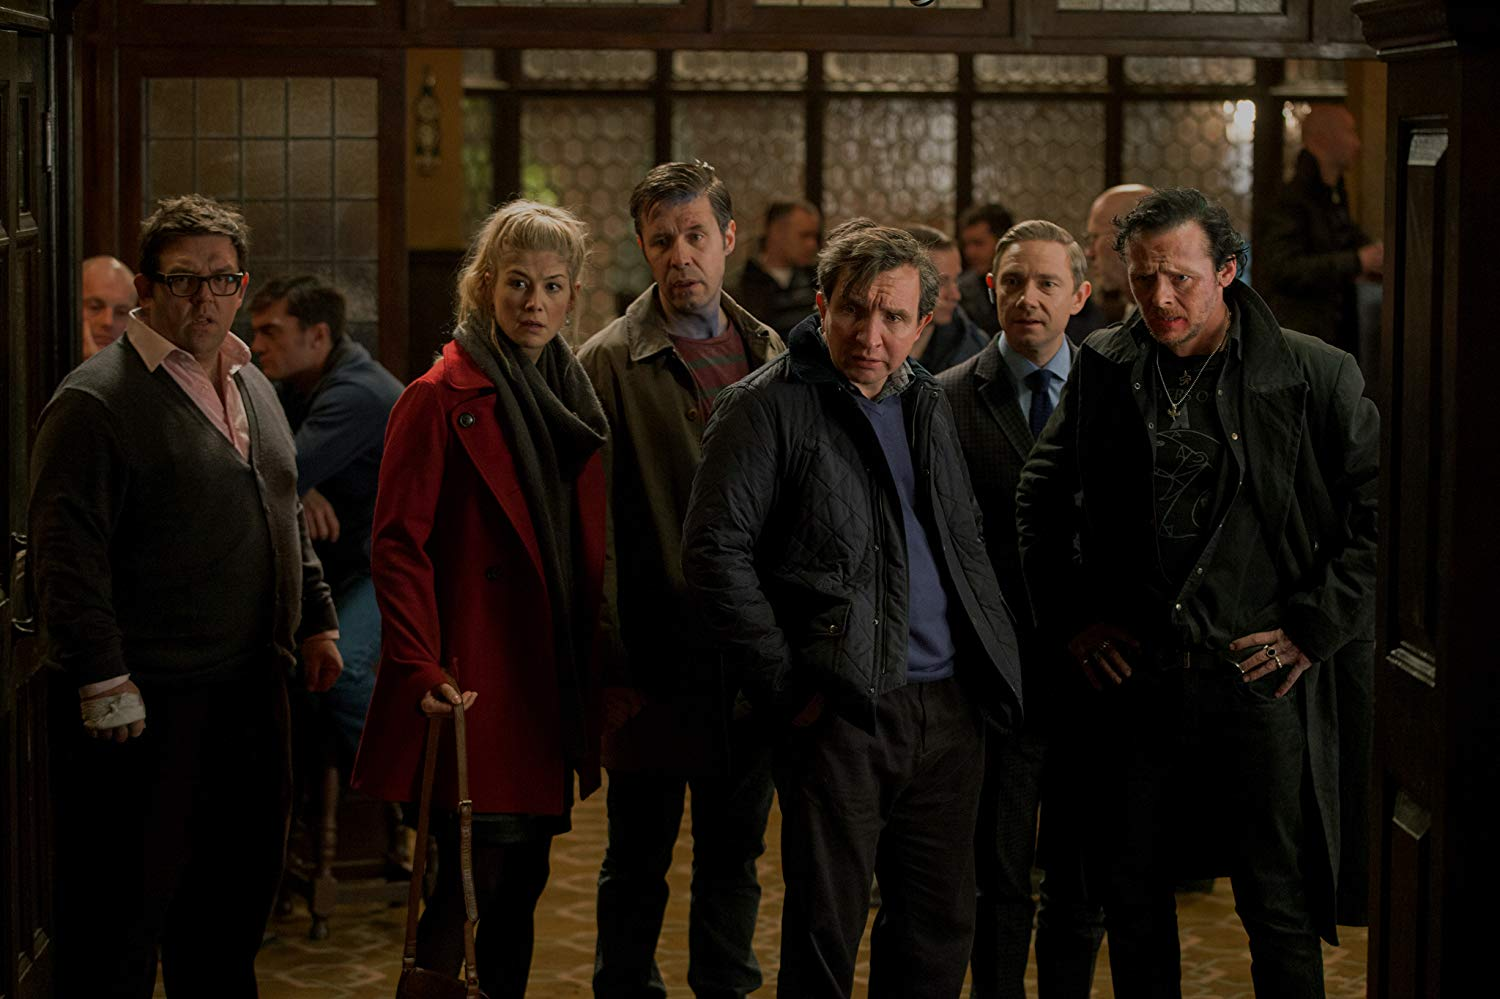 (From left) Nick Frost, Rosamund Pike, Paddy Considine, Eddie Marsan, Martin Freeman and Simon Pegg